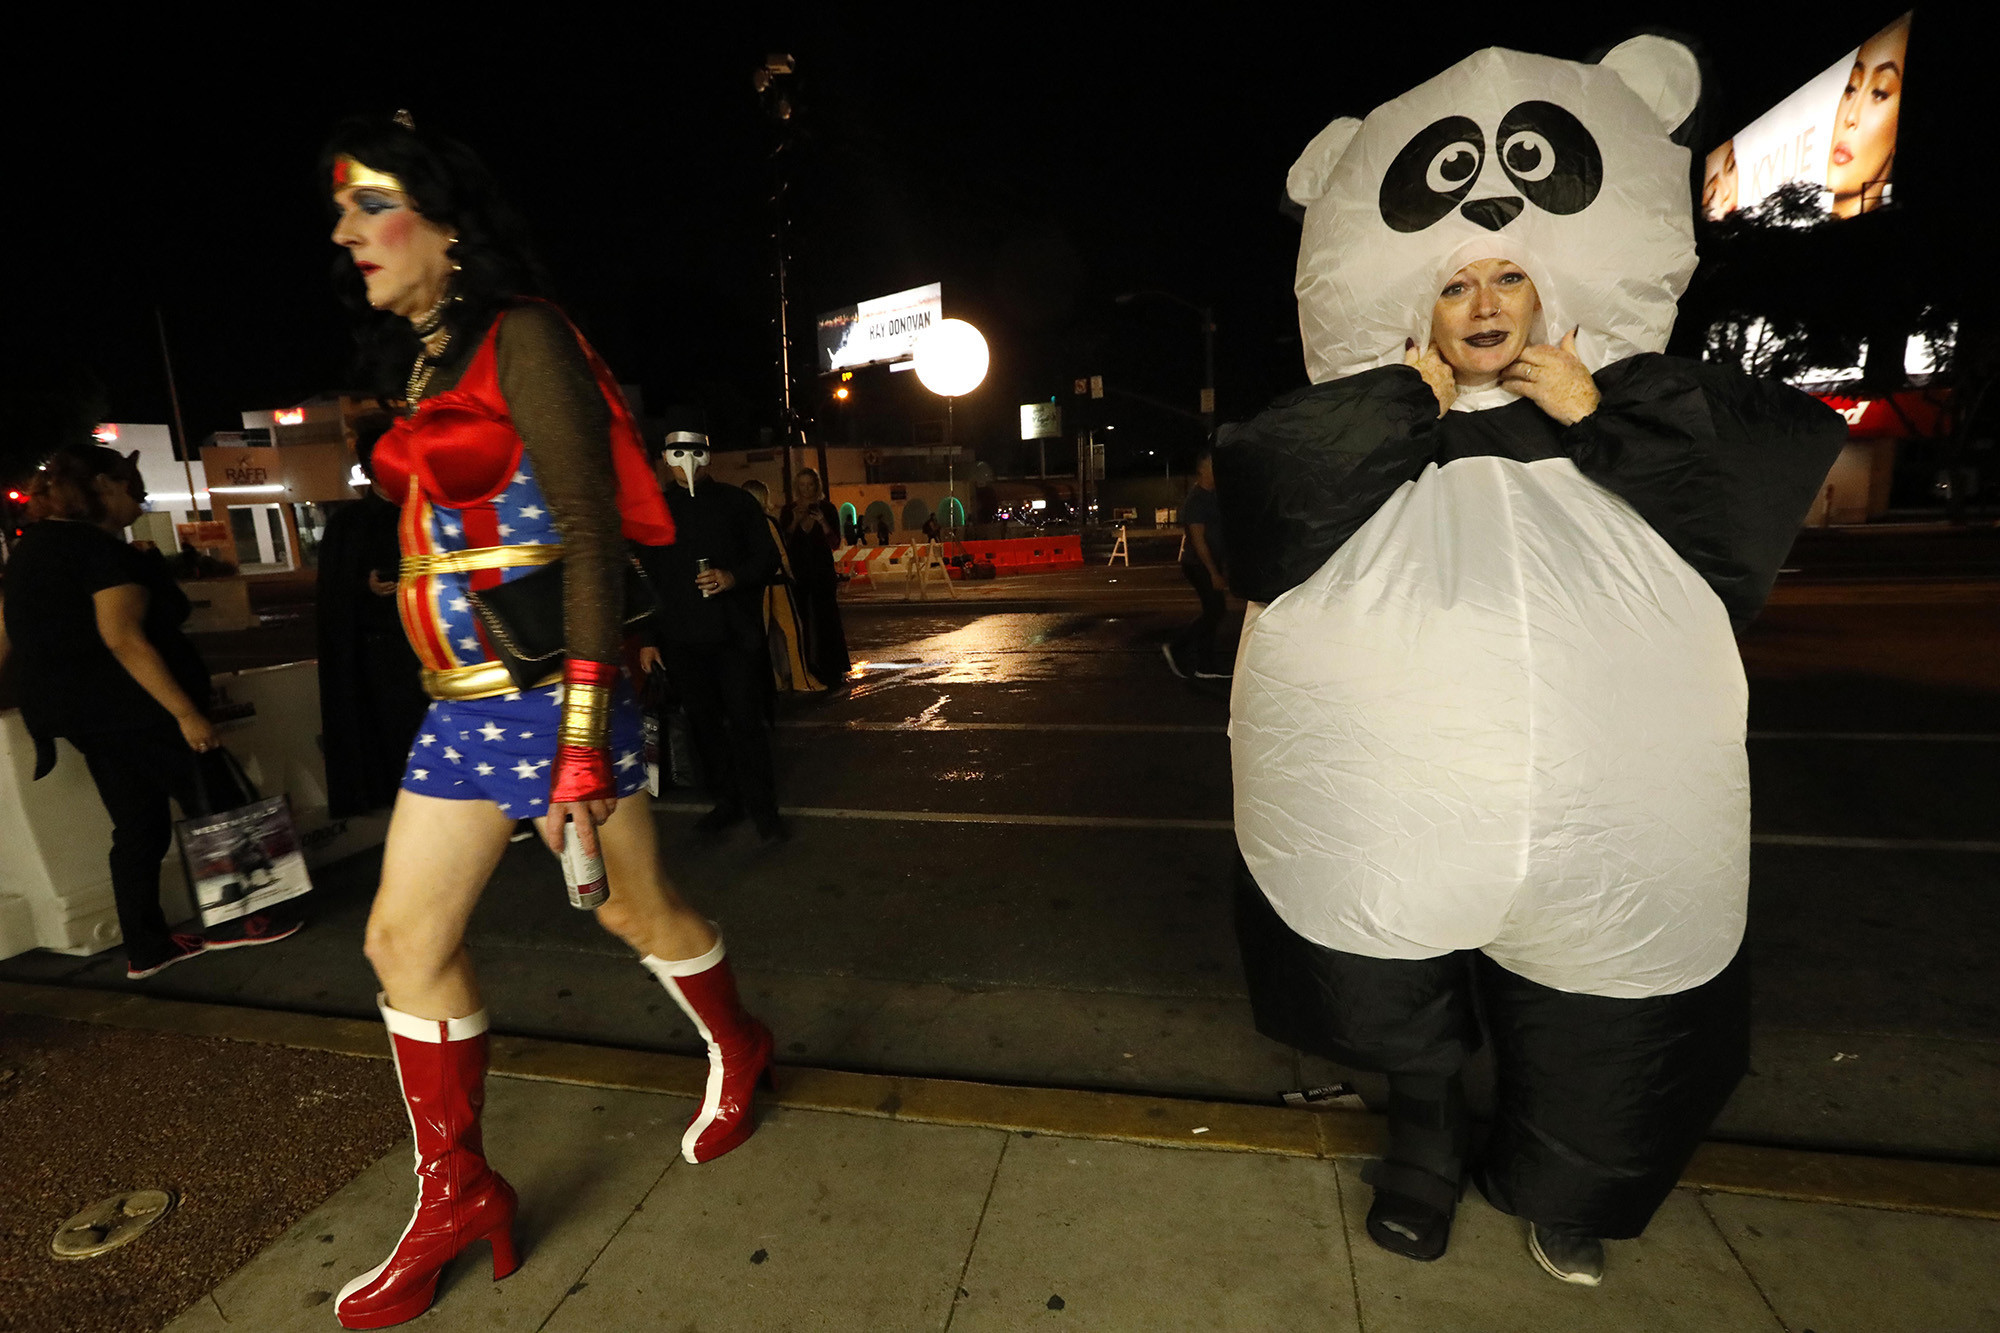 WEST HOLLYWOOD, CA – OCTOBER 31, 2018 - - Kathryn Anderson, dresses as a panda, while Wonder Woman w